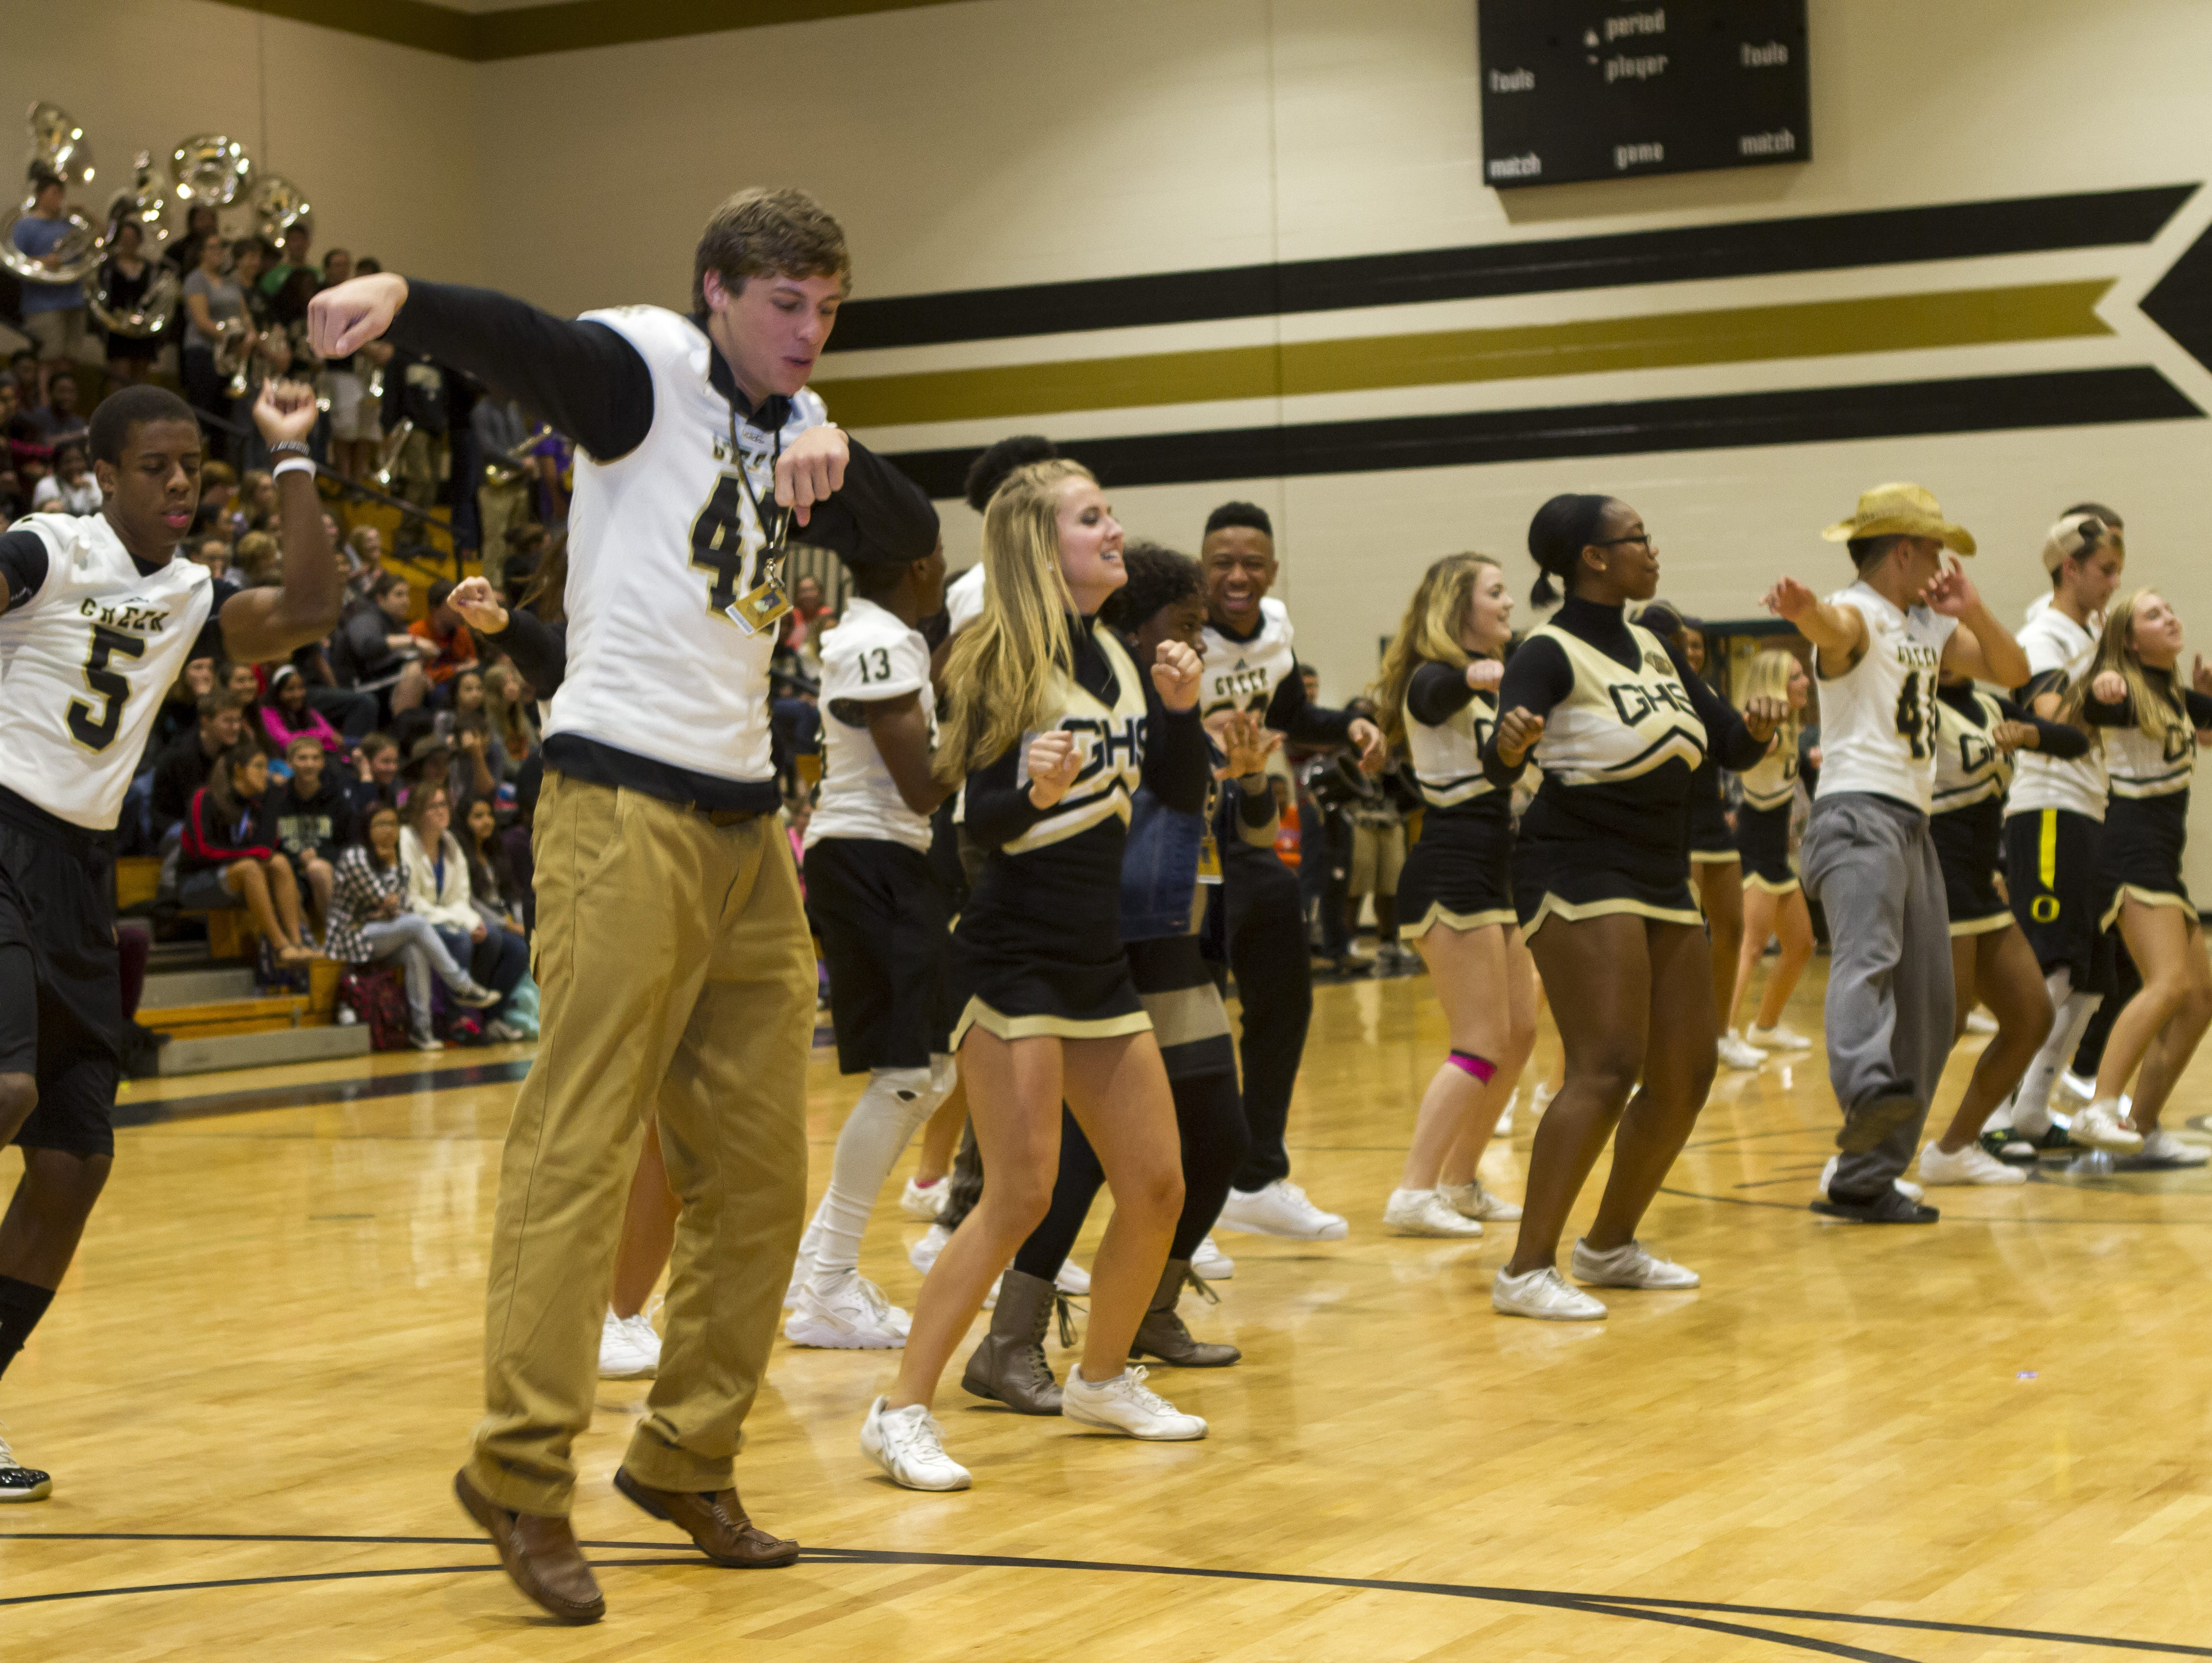 """Greer High School football players join the cheerleaders in a dance-off skit against """"rivals"""" dressed up as the Blue Ridge High School squad."""